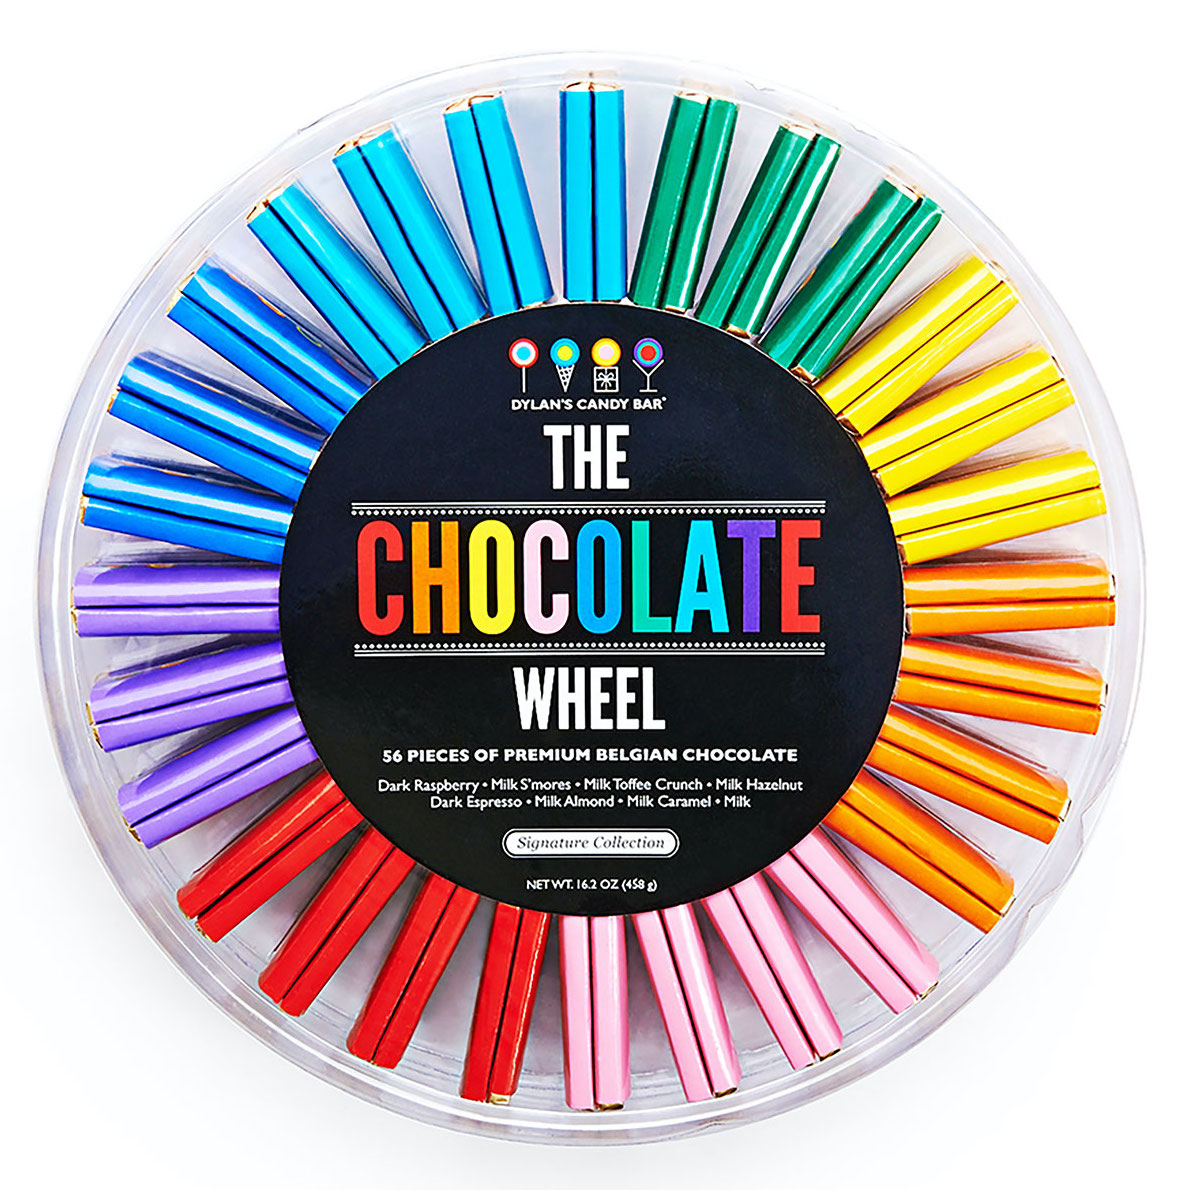 chocolate wrapped in various colors arranged in a wheel shape